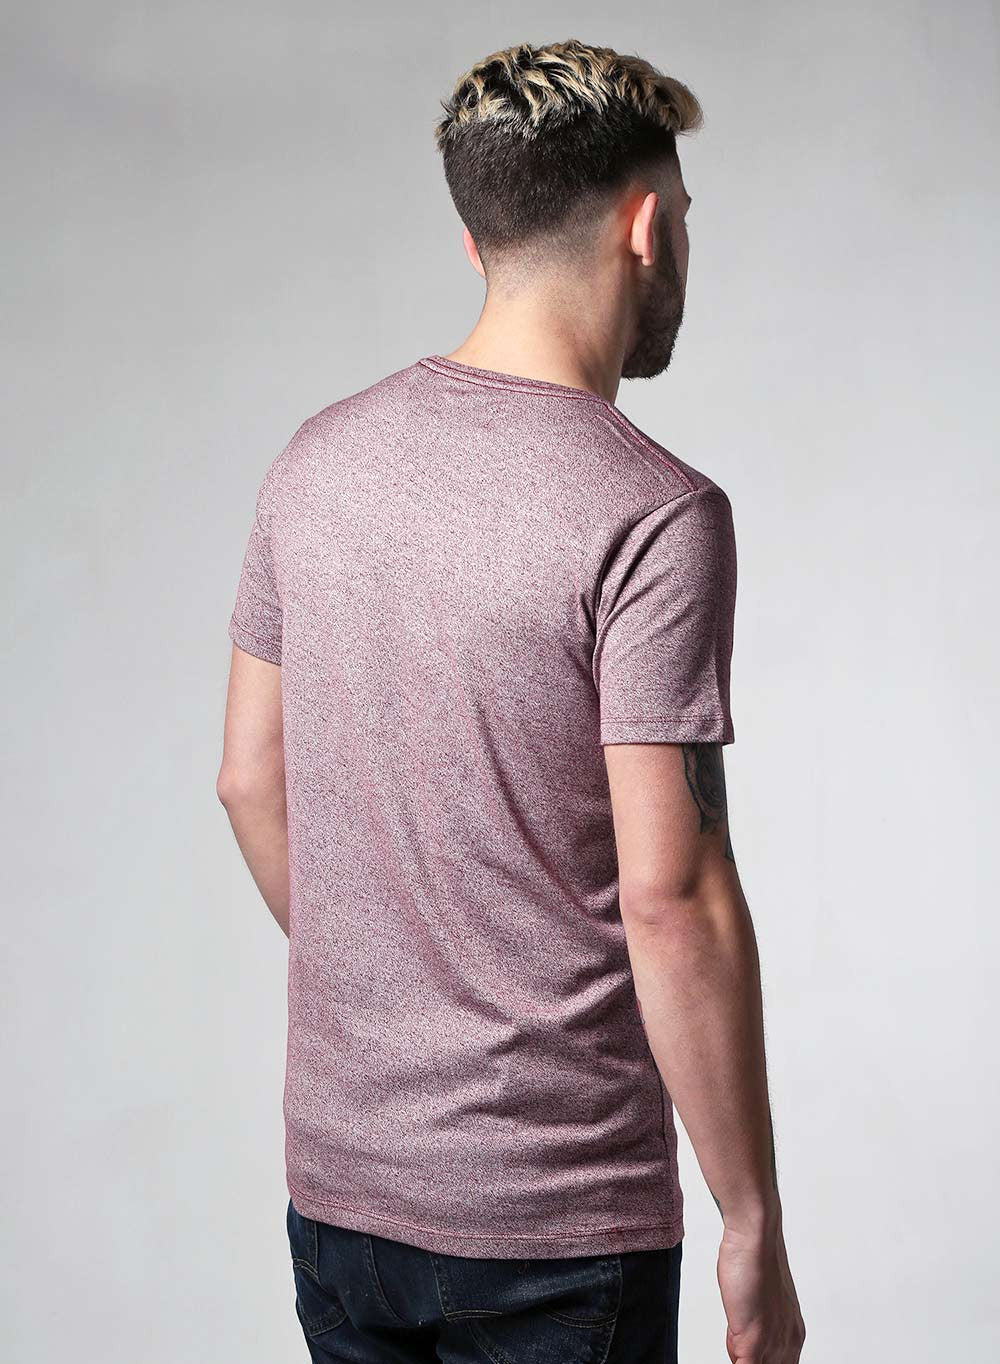 Lindbergh Slim Fit Burgundy Marl T-shirt - LoveClothing.com - 4